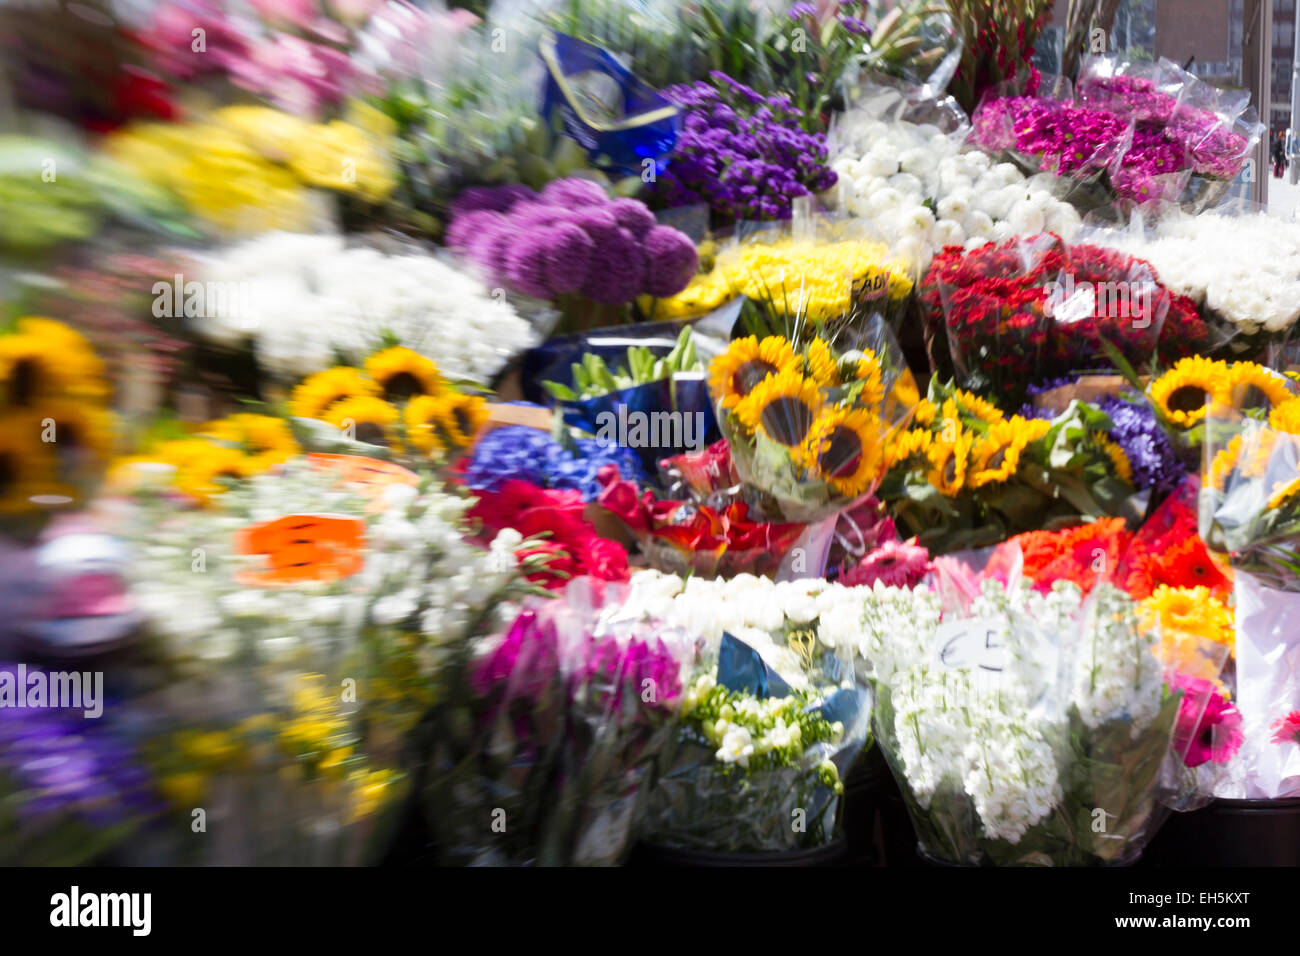 Lensbaby image of a flower stand in Dublin - Stock Image